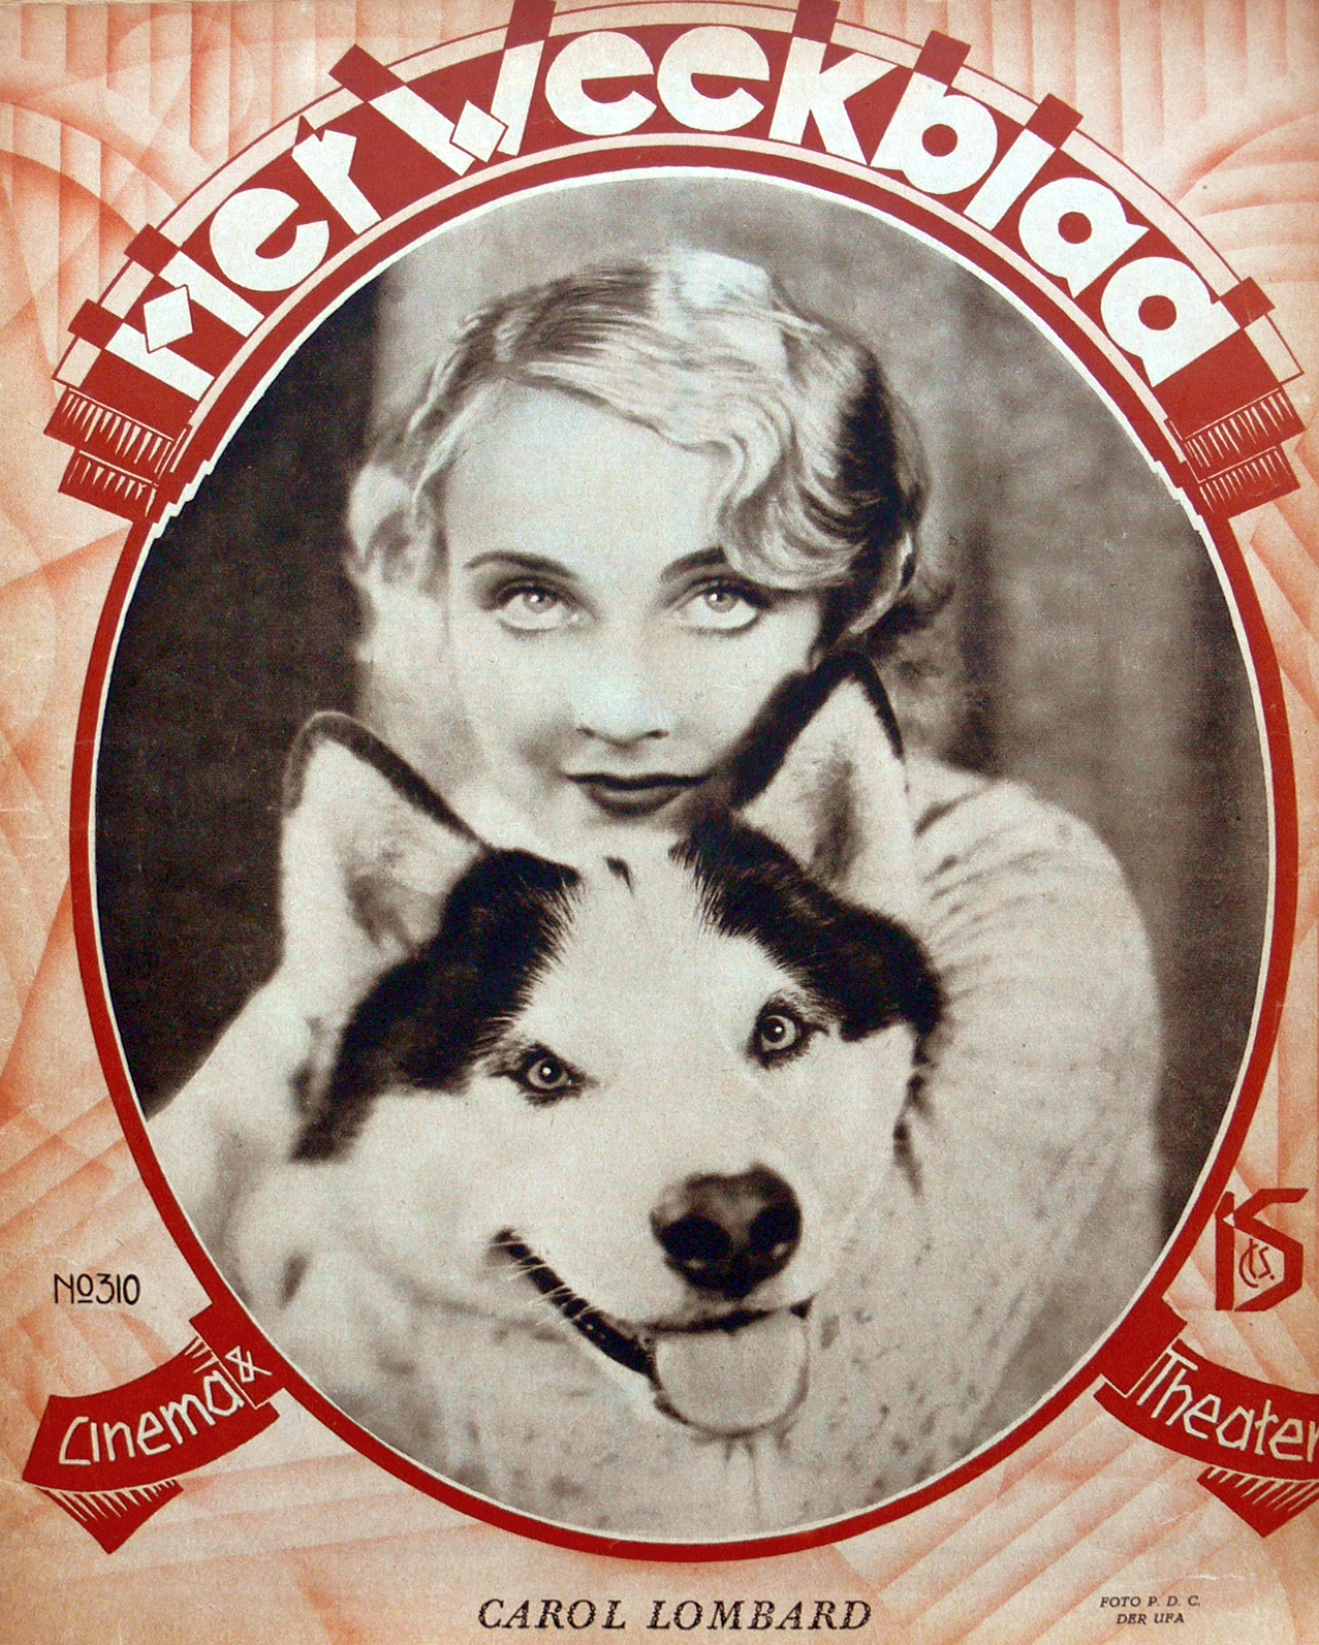 carole lombard het weekblad 1930 front large